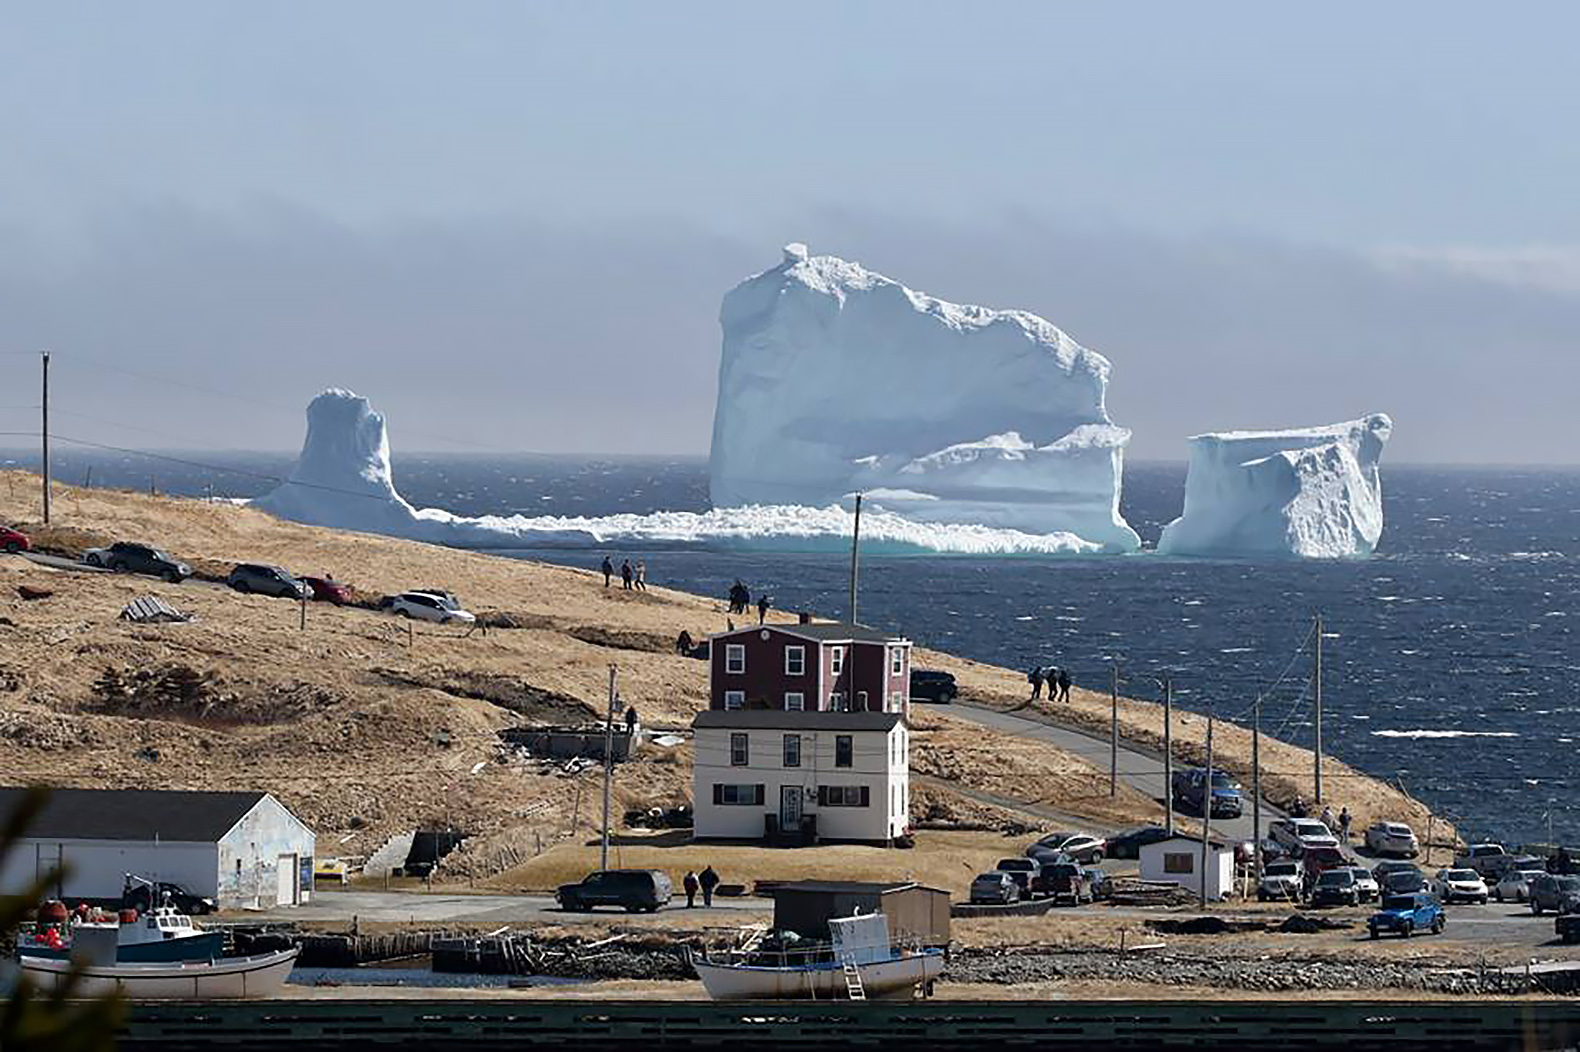 Massive iceberg draws tourists to tiny Canadian town